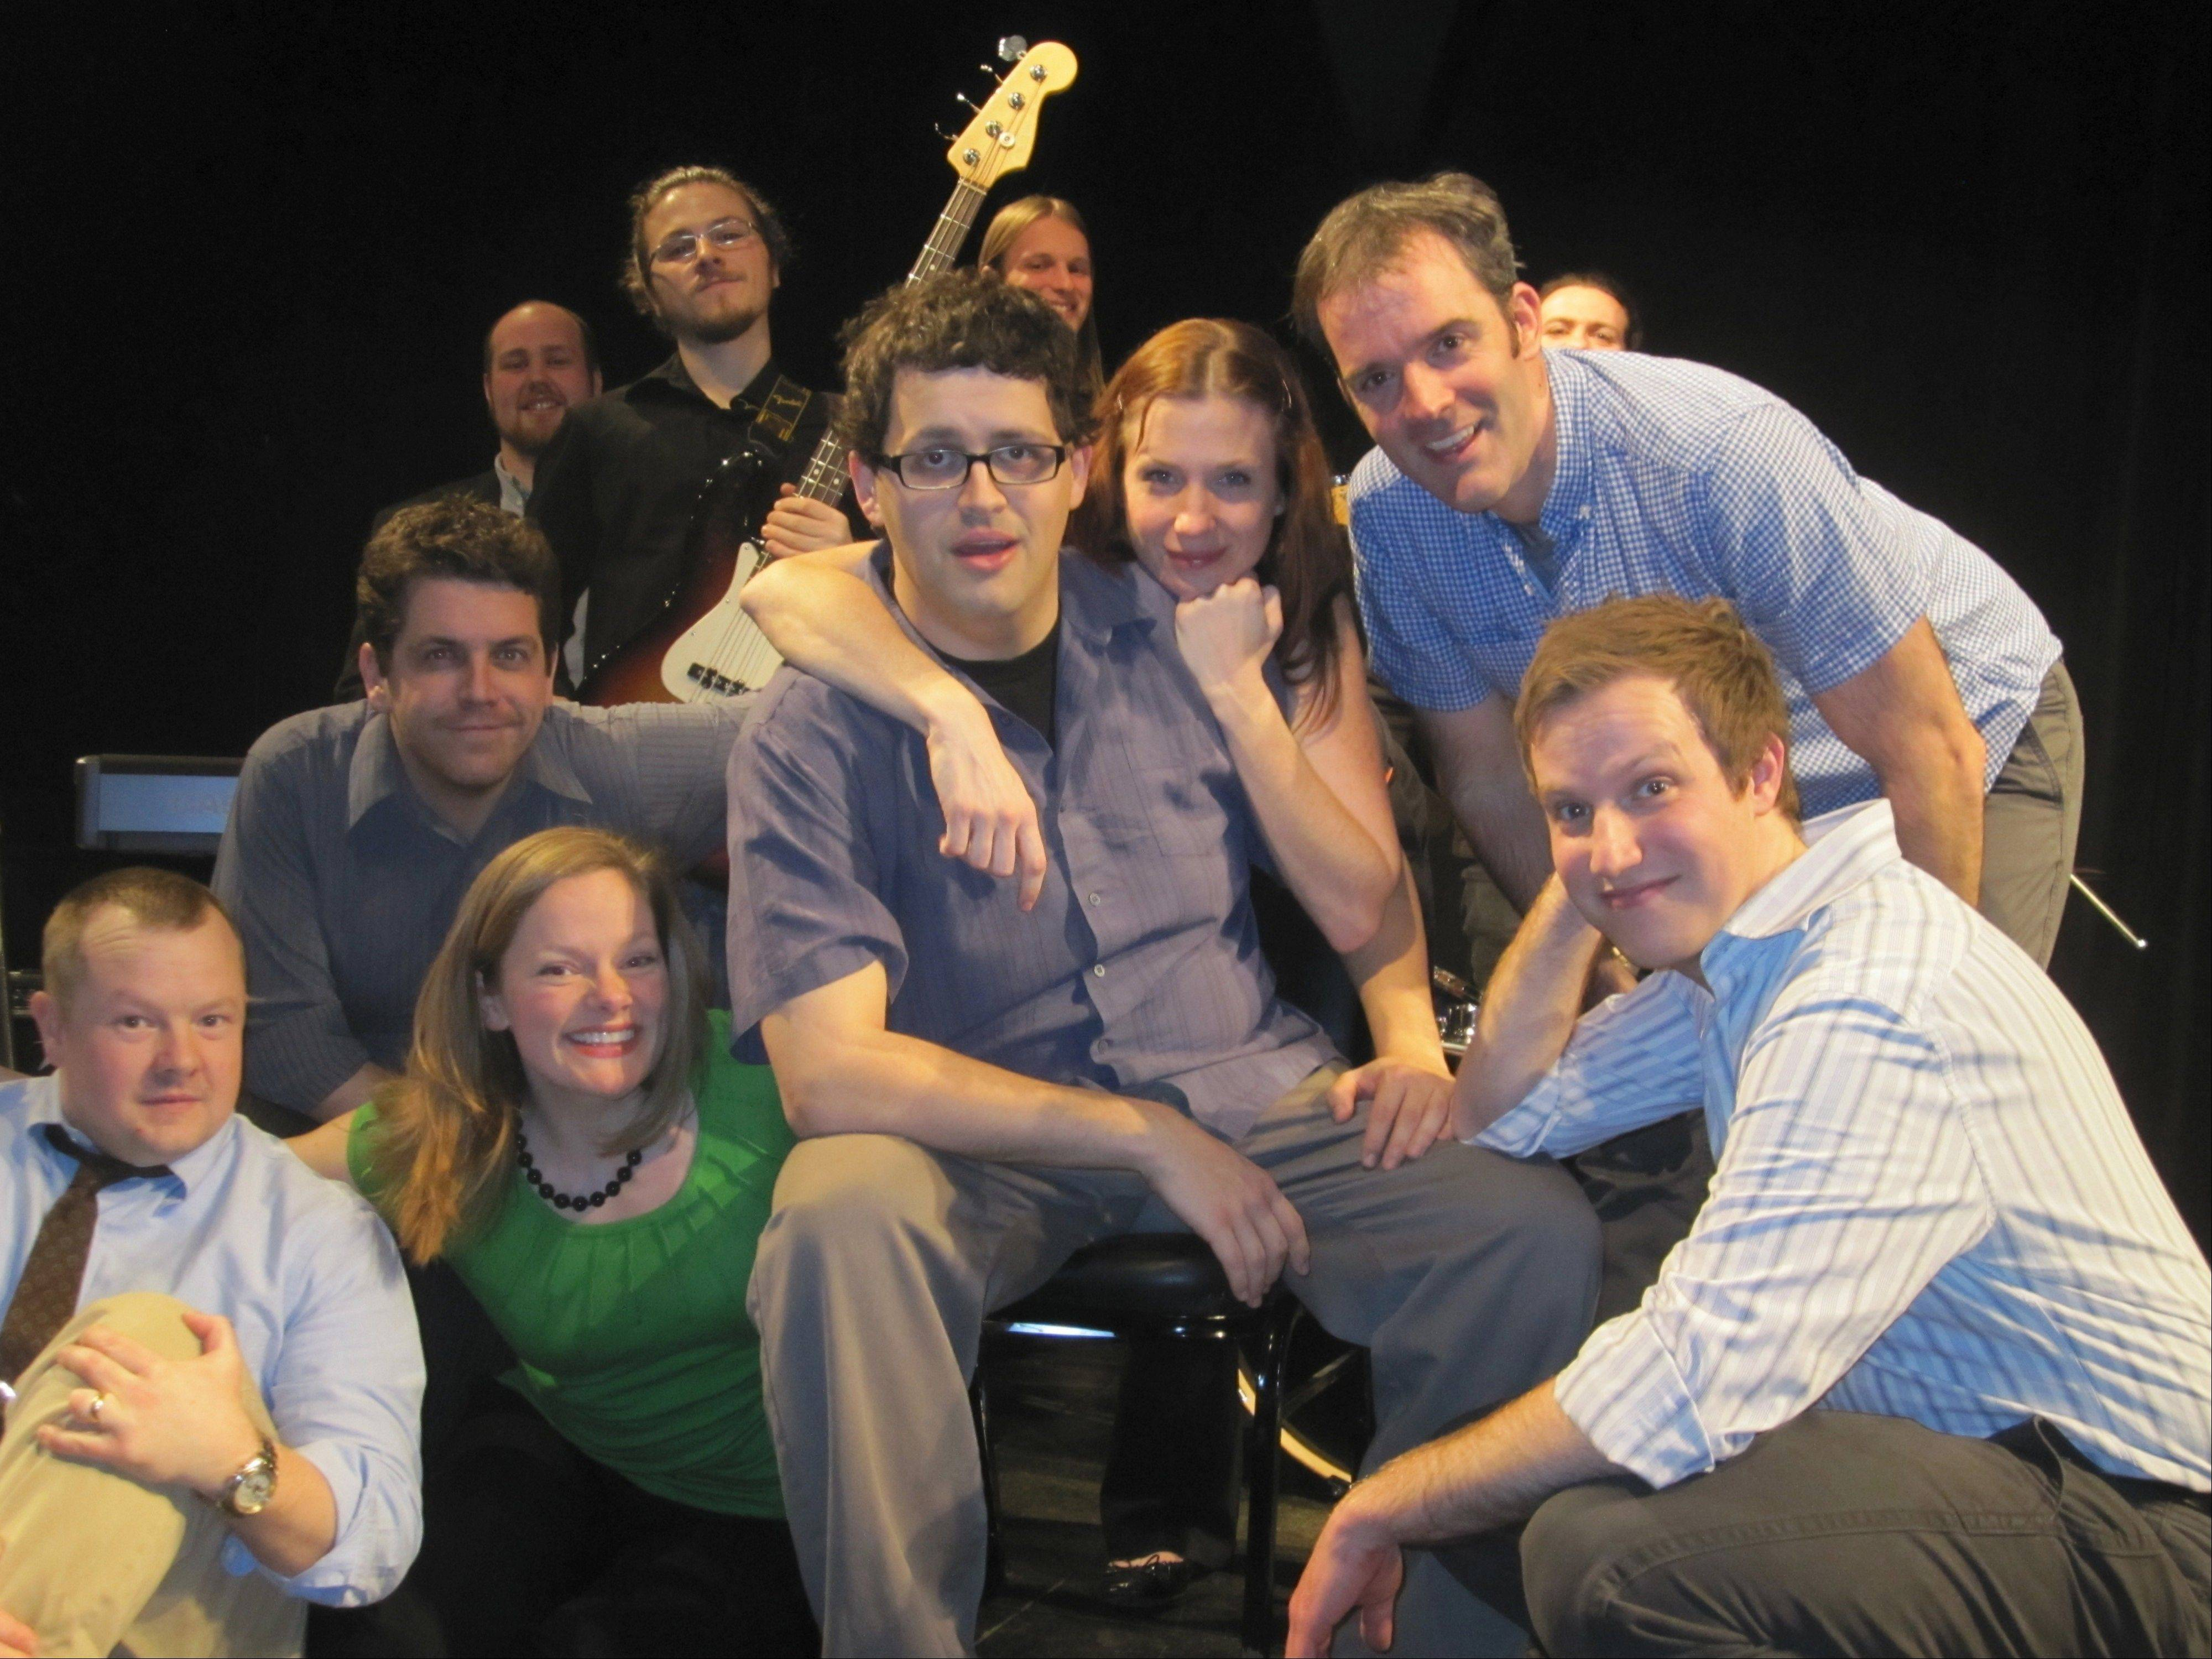 The Chicago company Baby Wants Candy will stage a fully improvised musical for a special performance at Cutting Hall in Palatine.